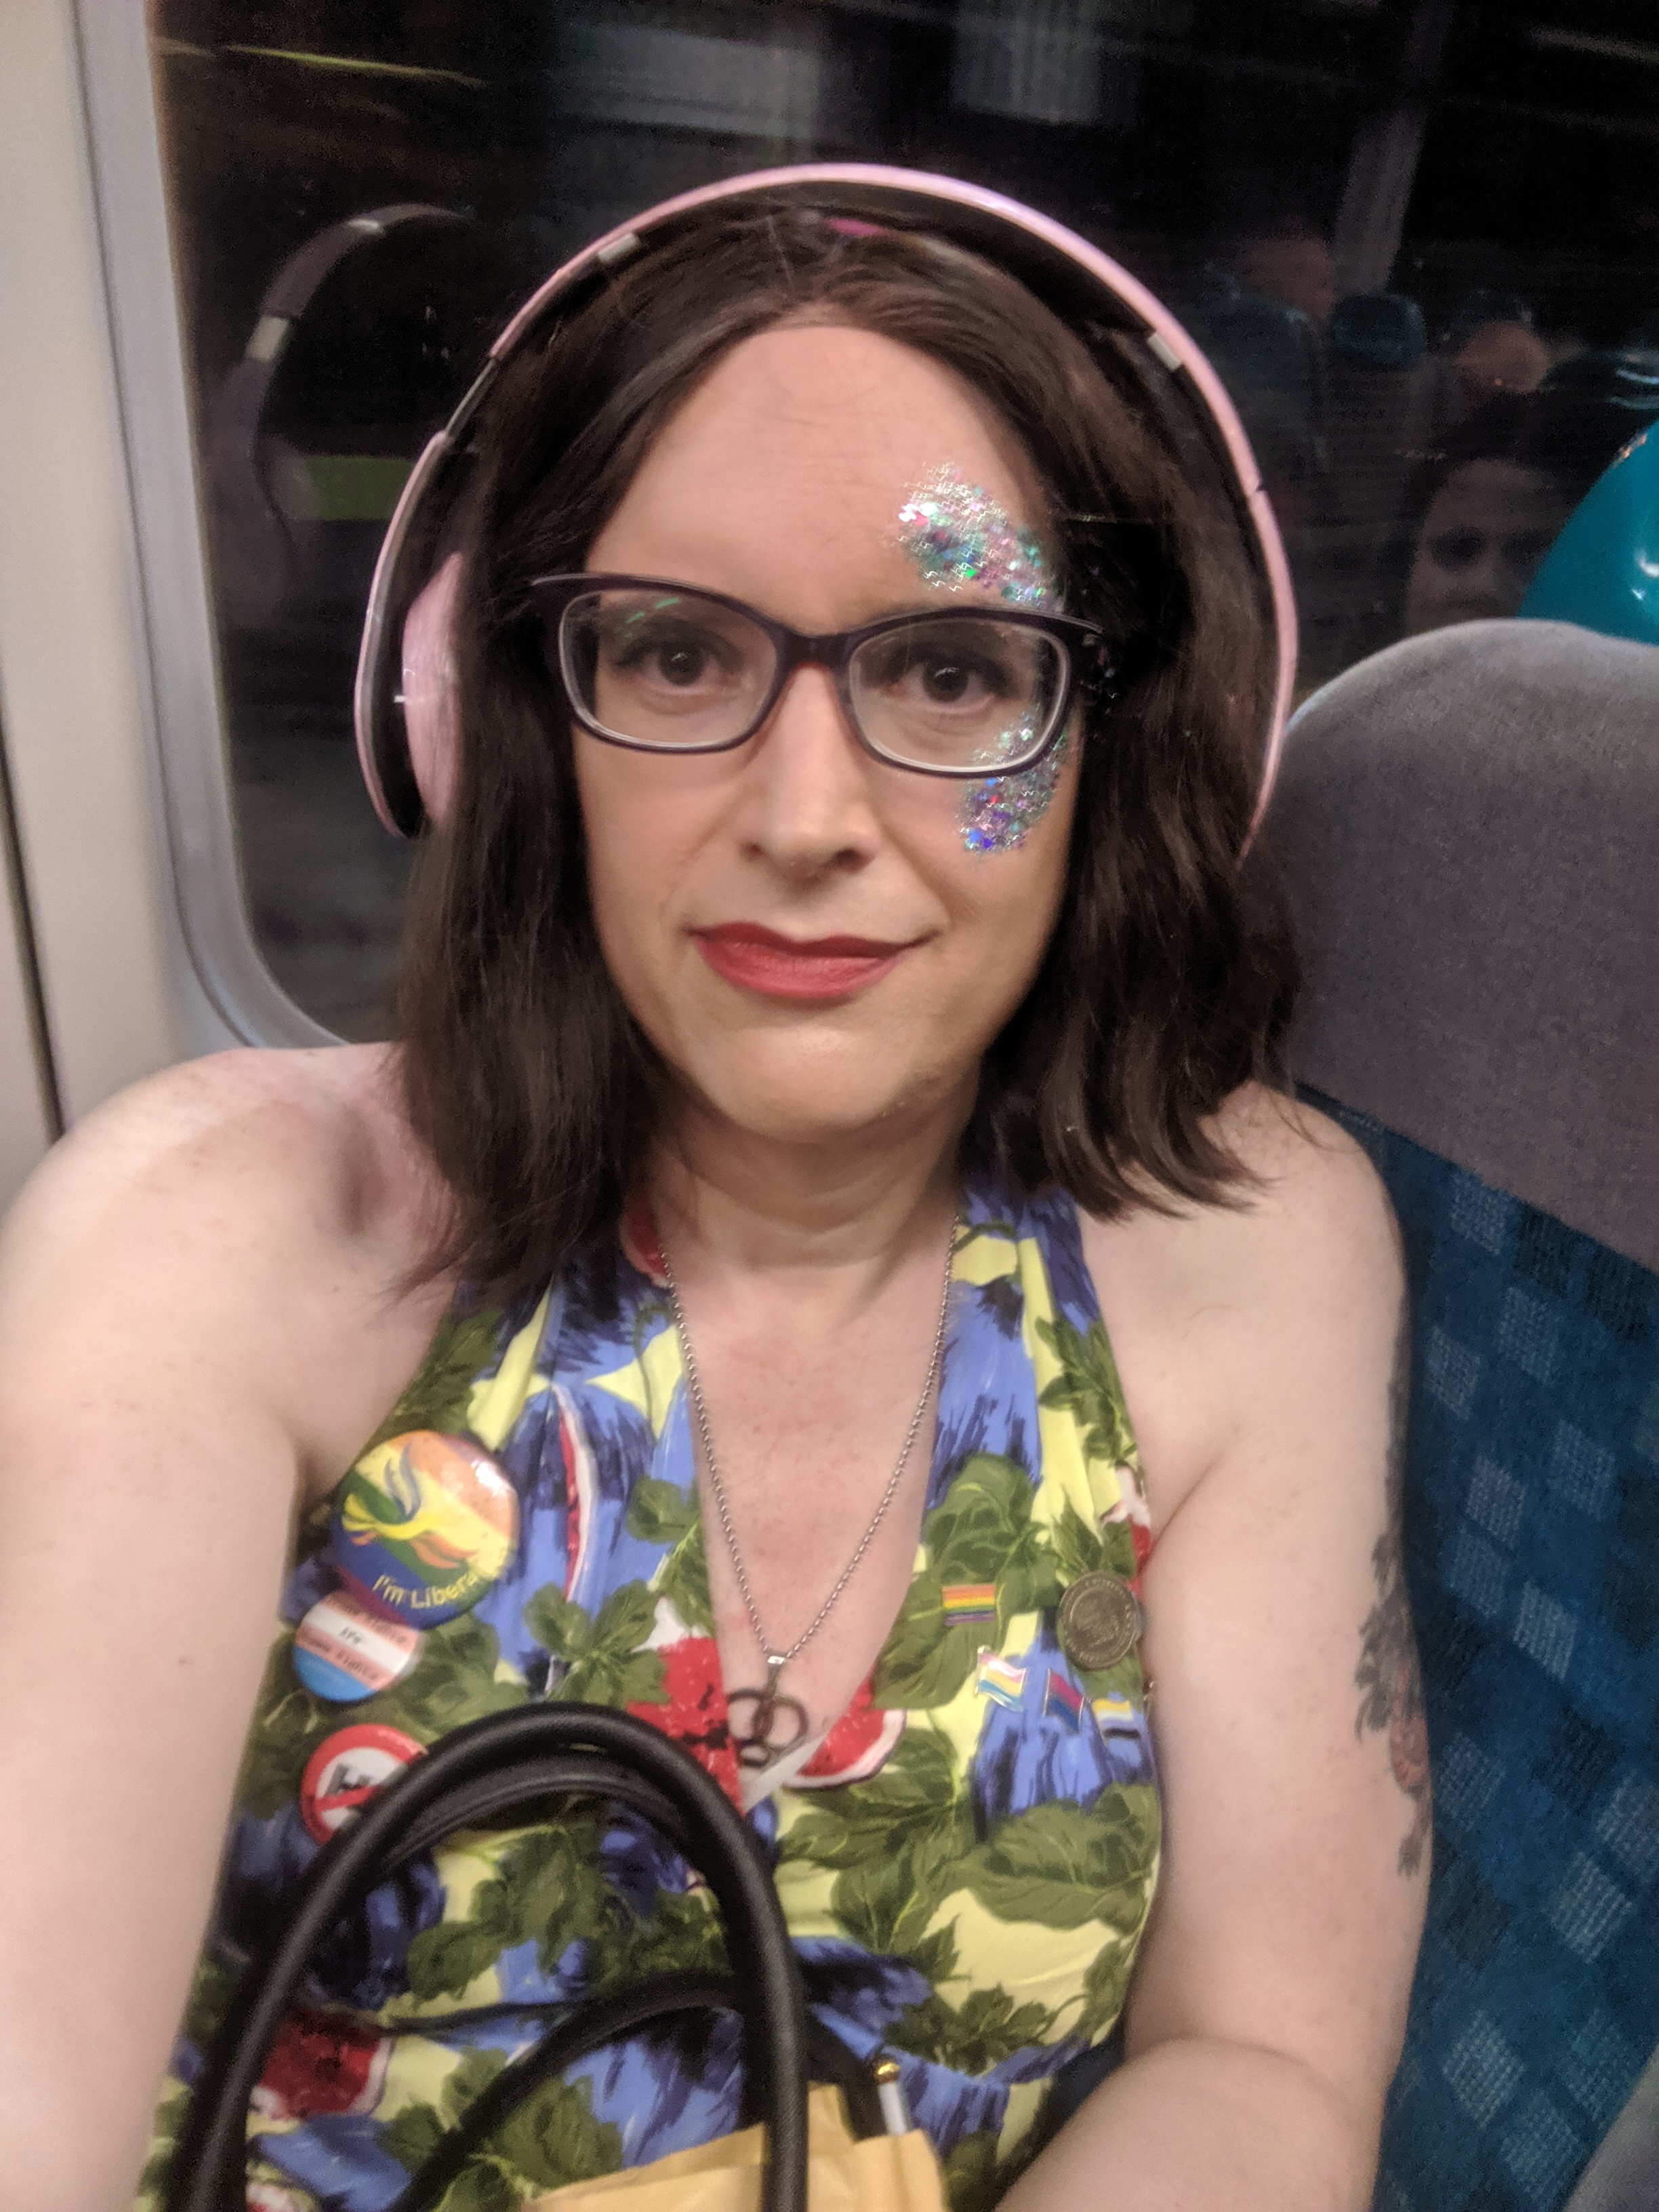 A selfie of me on the bus. I'm coming back from Cardiff Pride 2019. There's blue glitter painted on the right side of my face